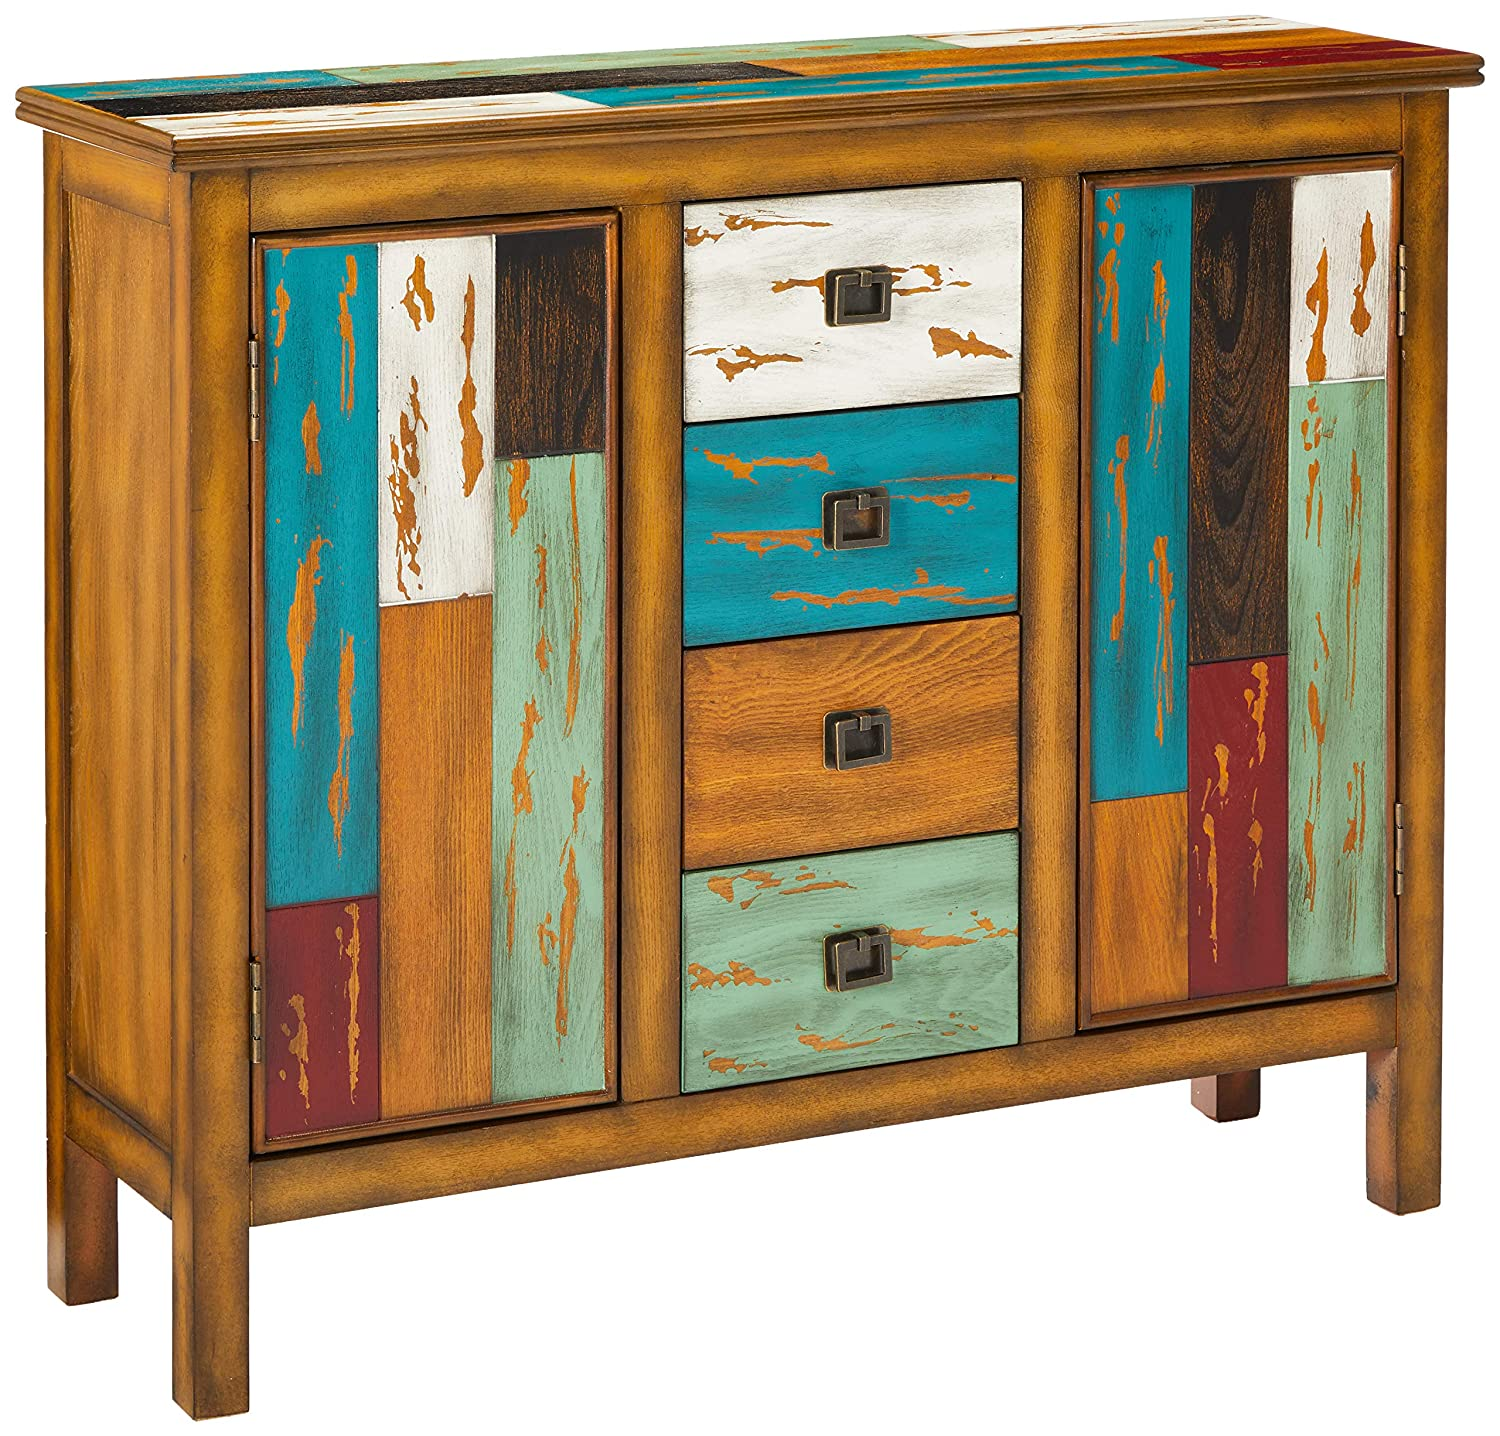 Amazon.com: Great Deal Furniture | Delaney | Antique Distressed Wood  Storage Cabinet | in Multicolor: Home & Kitchen - Amazon.com: Great Deal Furniture Delaney Antique Distressed Wood